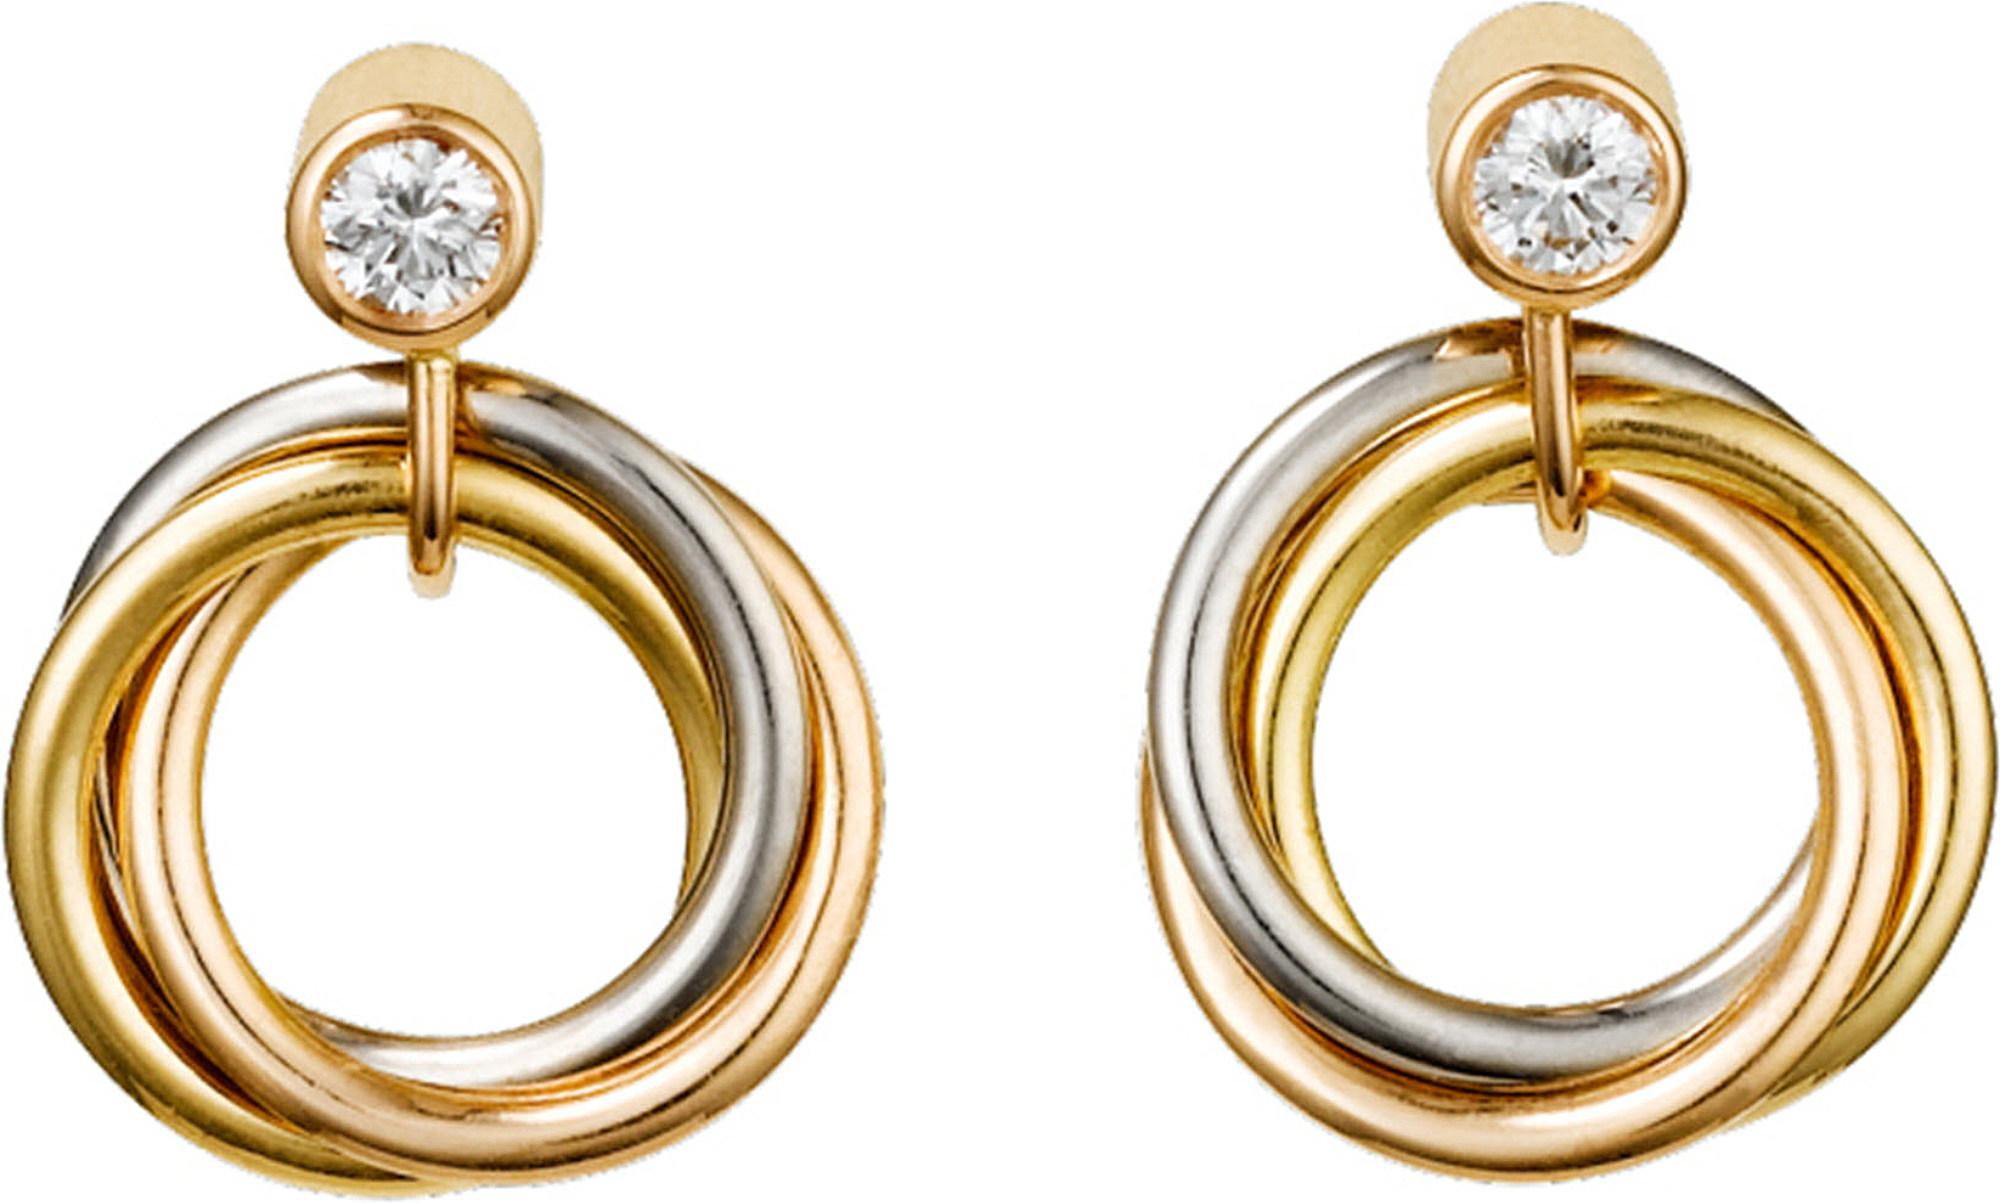 enlarged cartier trinity earrings jewelry realreal de earclip products the